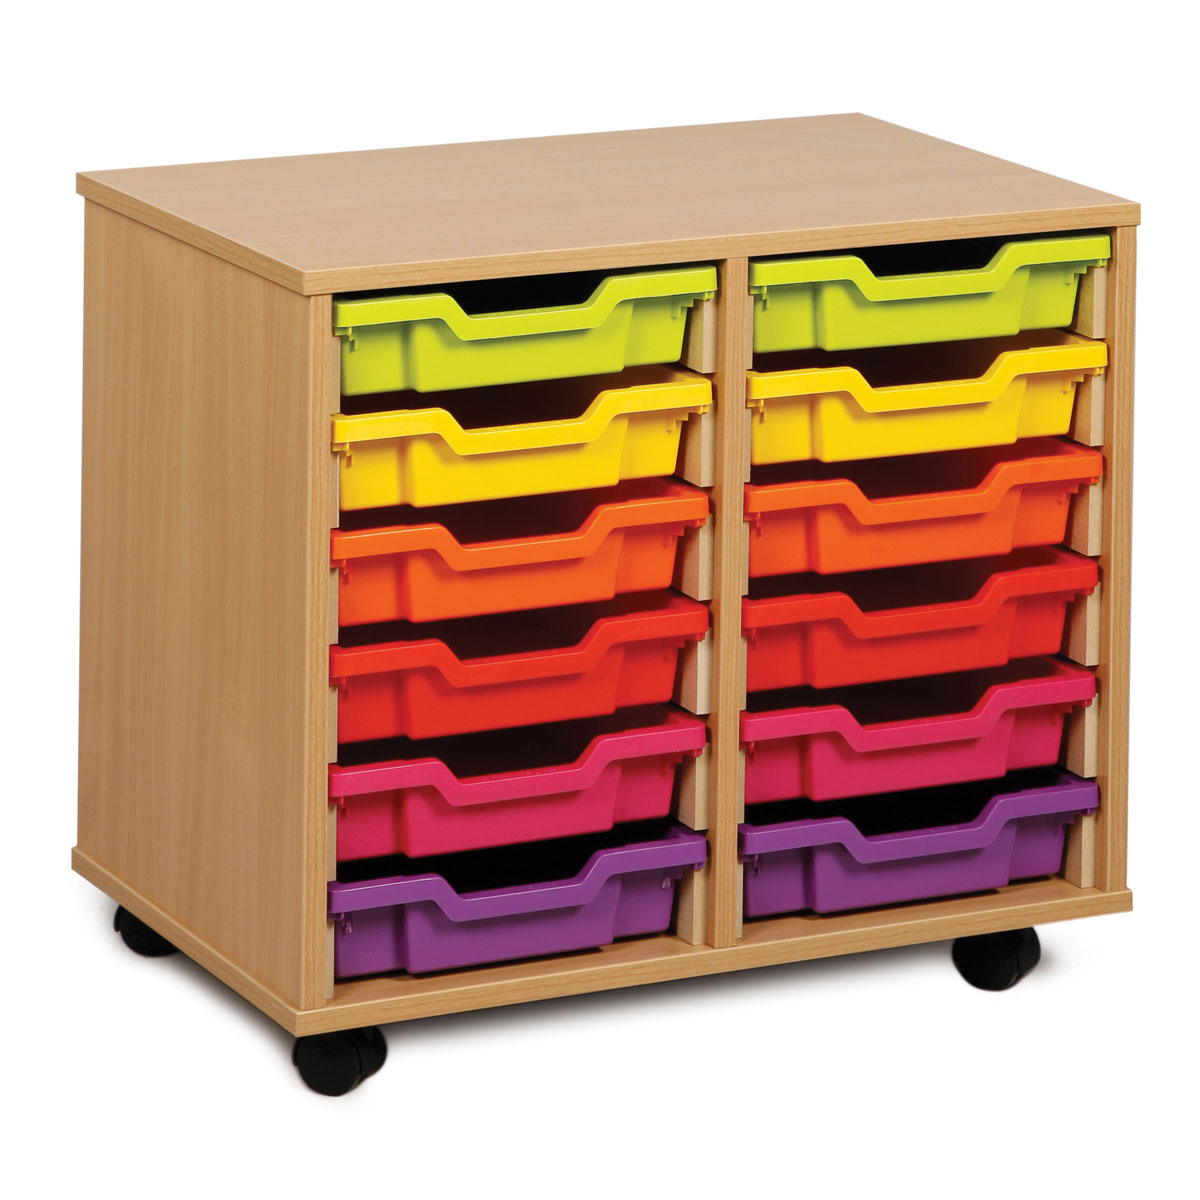 12 shallow tray storage unit meq2w buy at primary ict. Black Bedroom Furniture Sets. Home Design Ideas